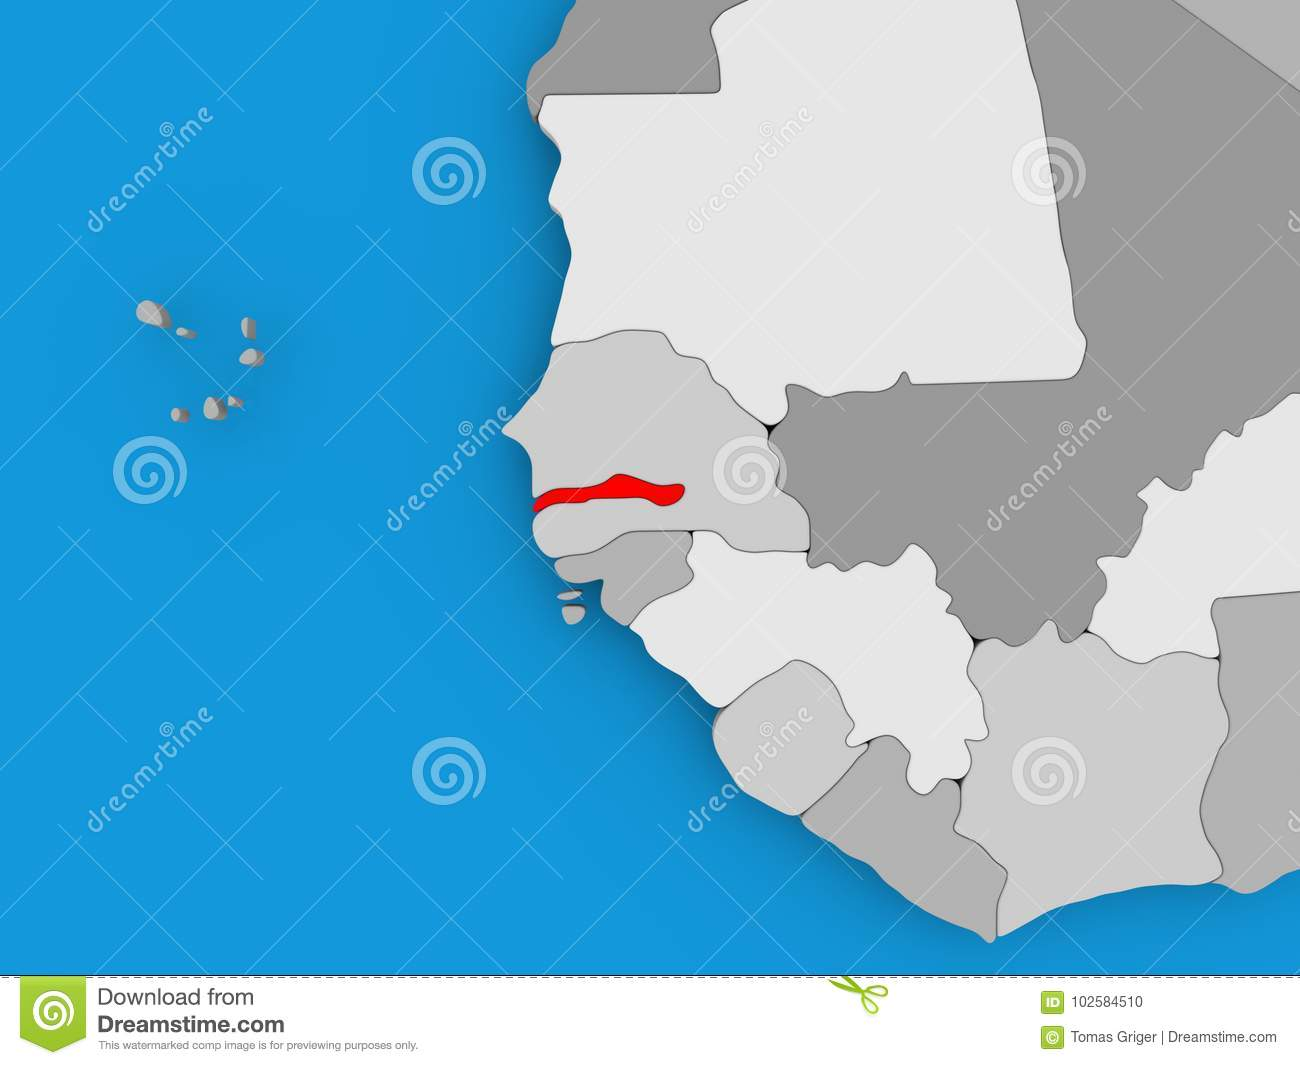 Gambia On Africa Map.Map Of Gambia Stock Illustration Illustration Of Africa 102584510